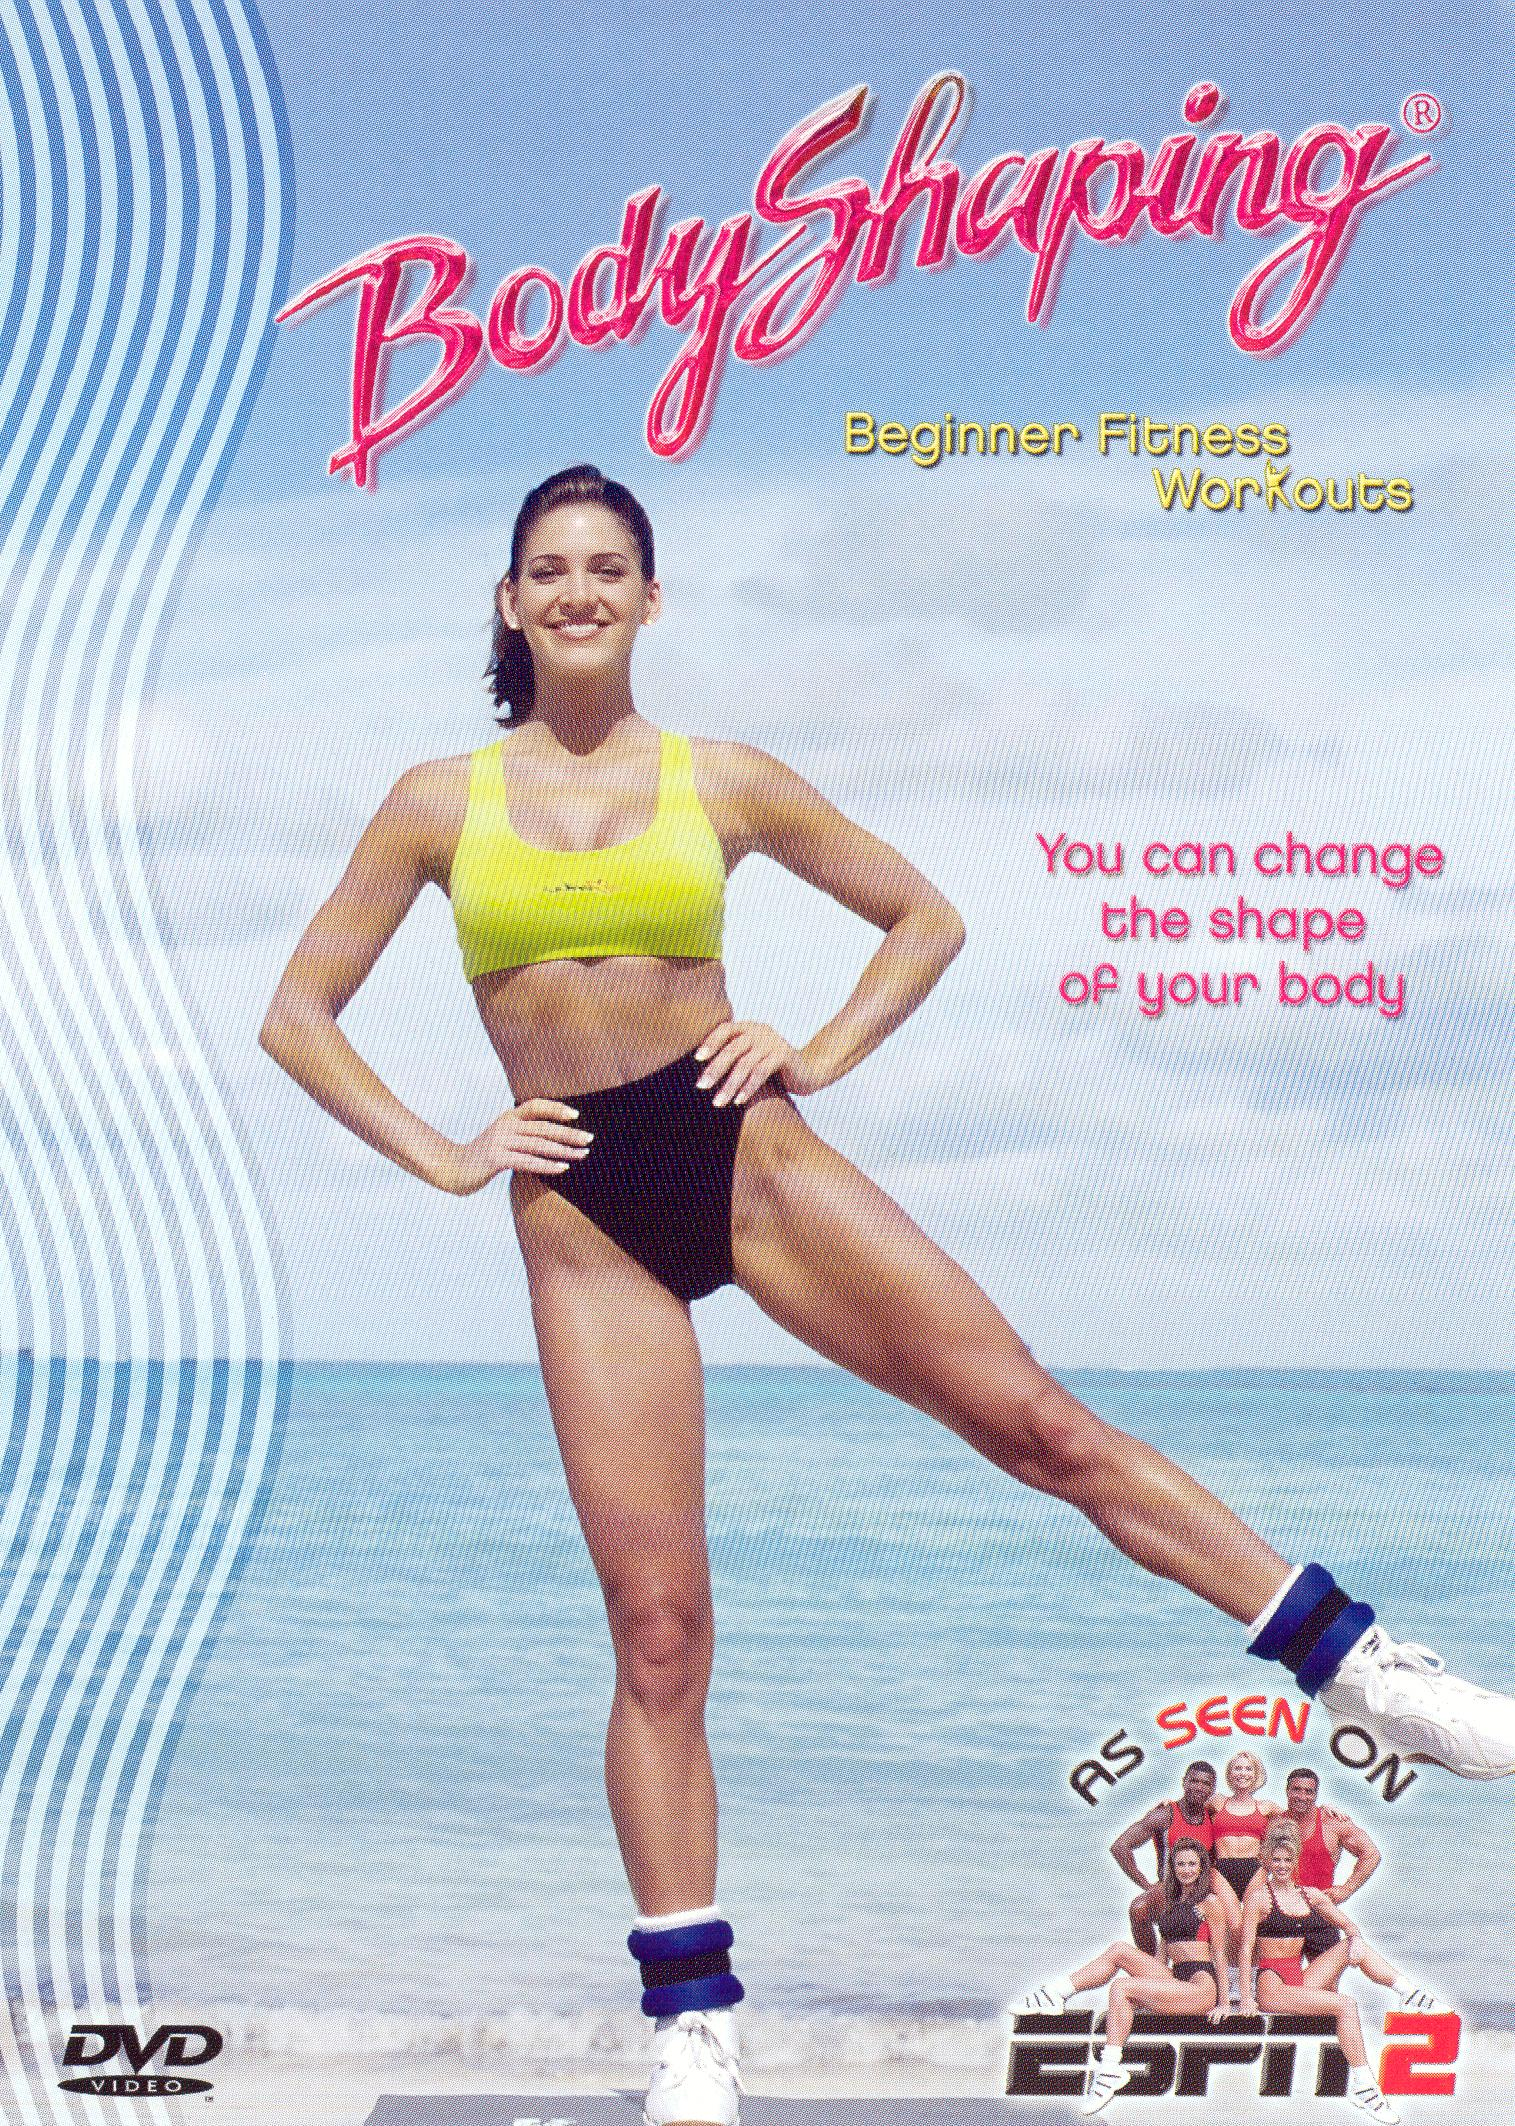 ESPN: BodyShaping - Beginner Fitness Workout